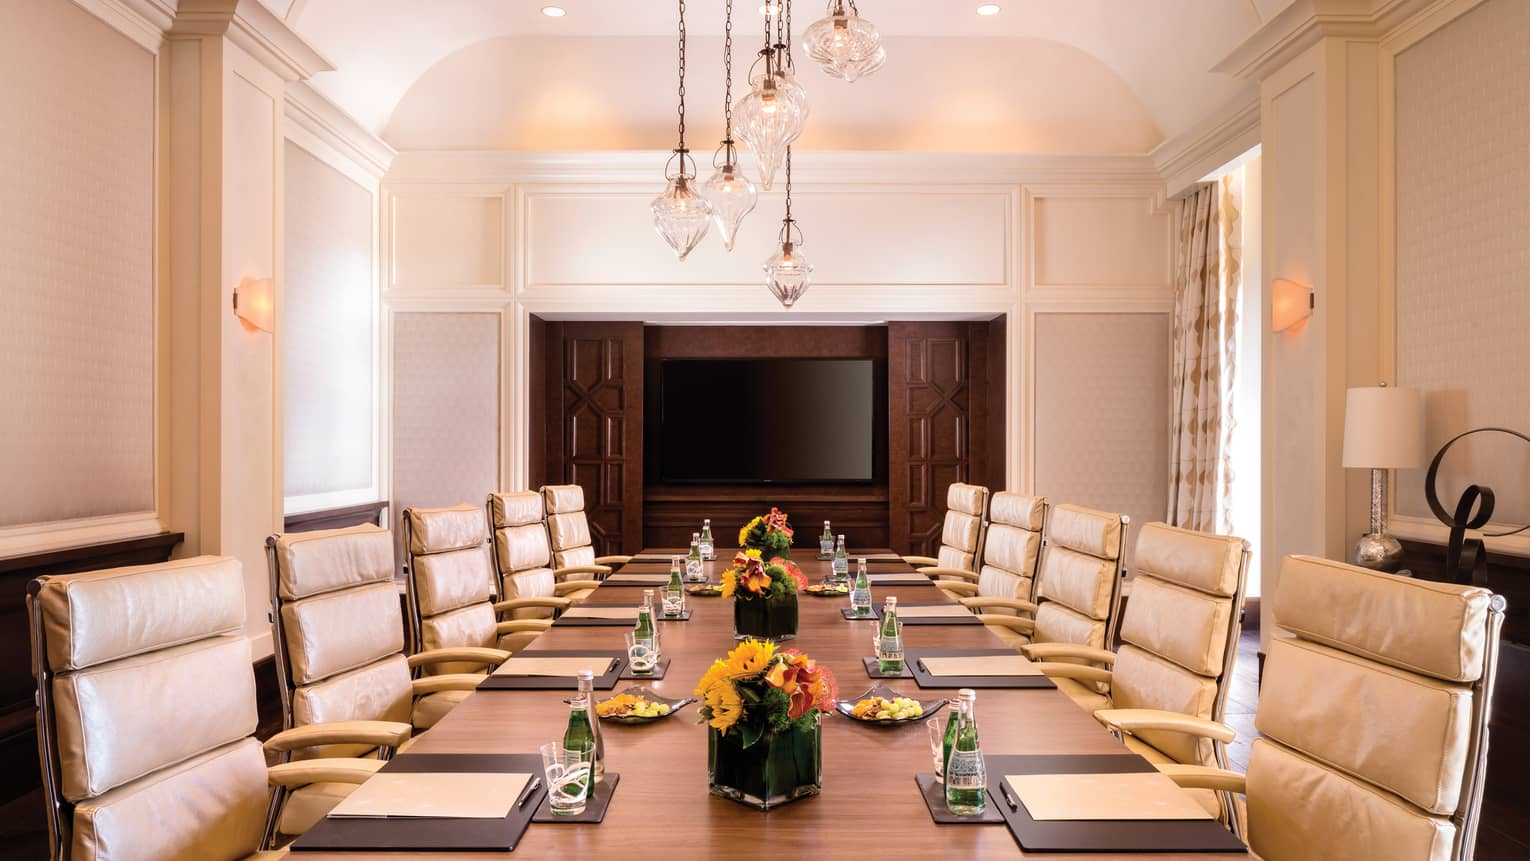 Executive Boardroom with large meeting table set with agendas and flowers, lined with tan leather chairs